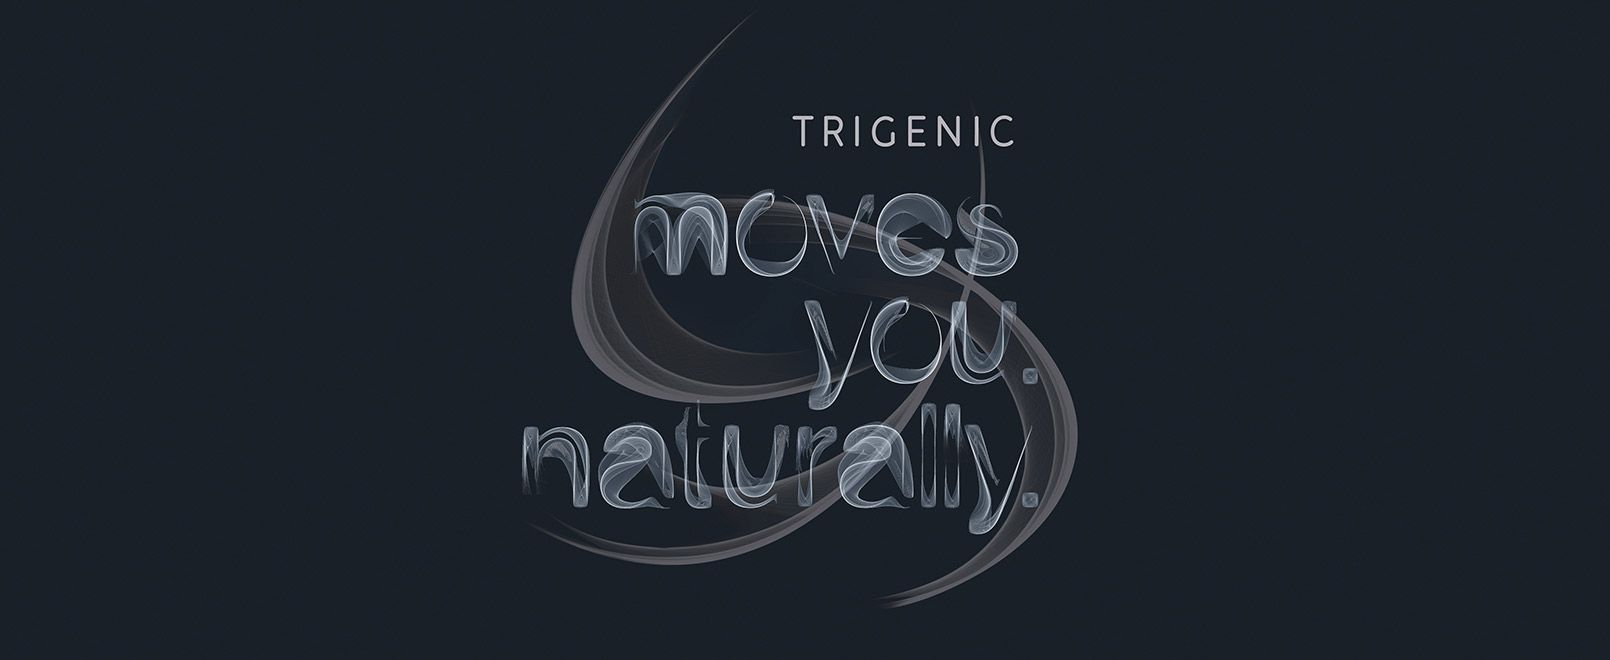 Trigenic - Moves you naturally